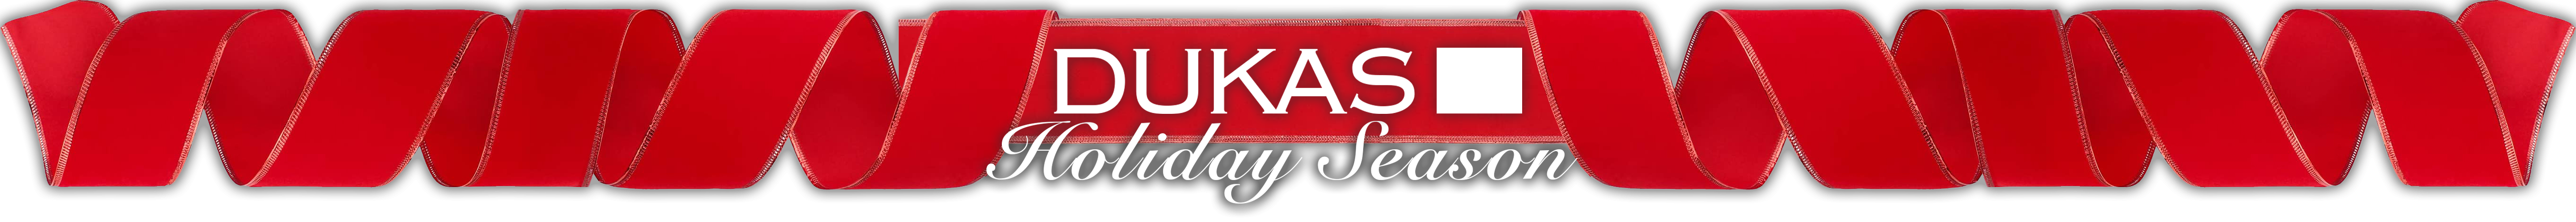 Official DUKAS Online Boutique - Luxury Shoes